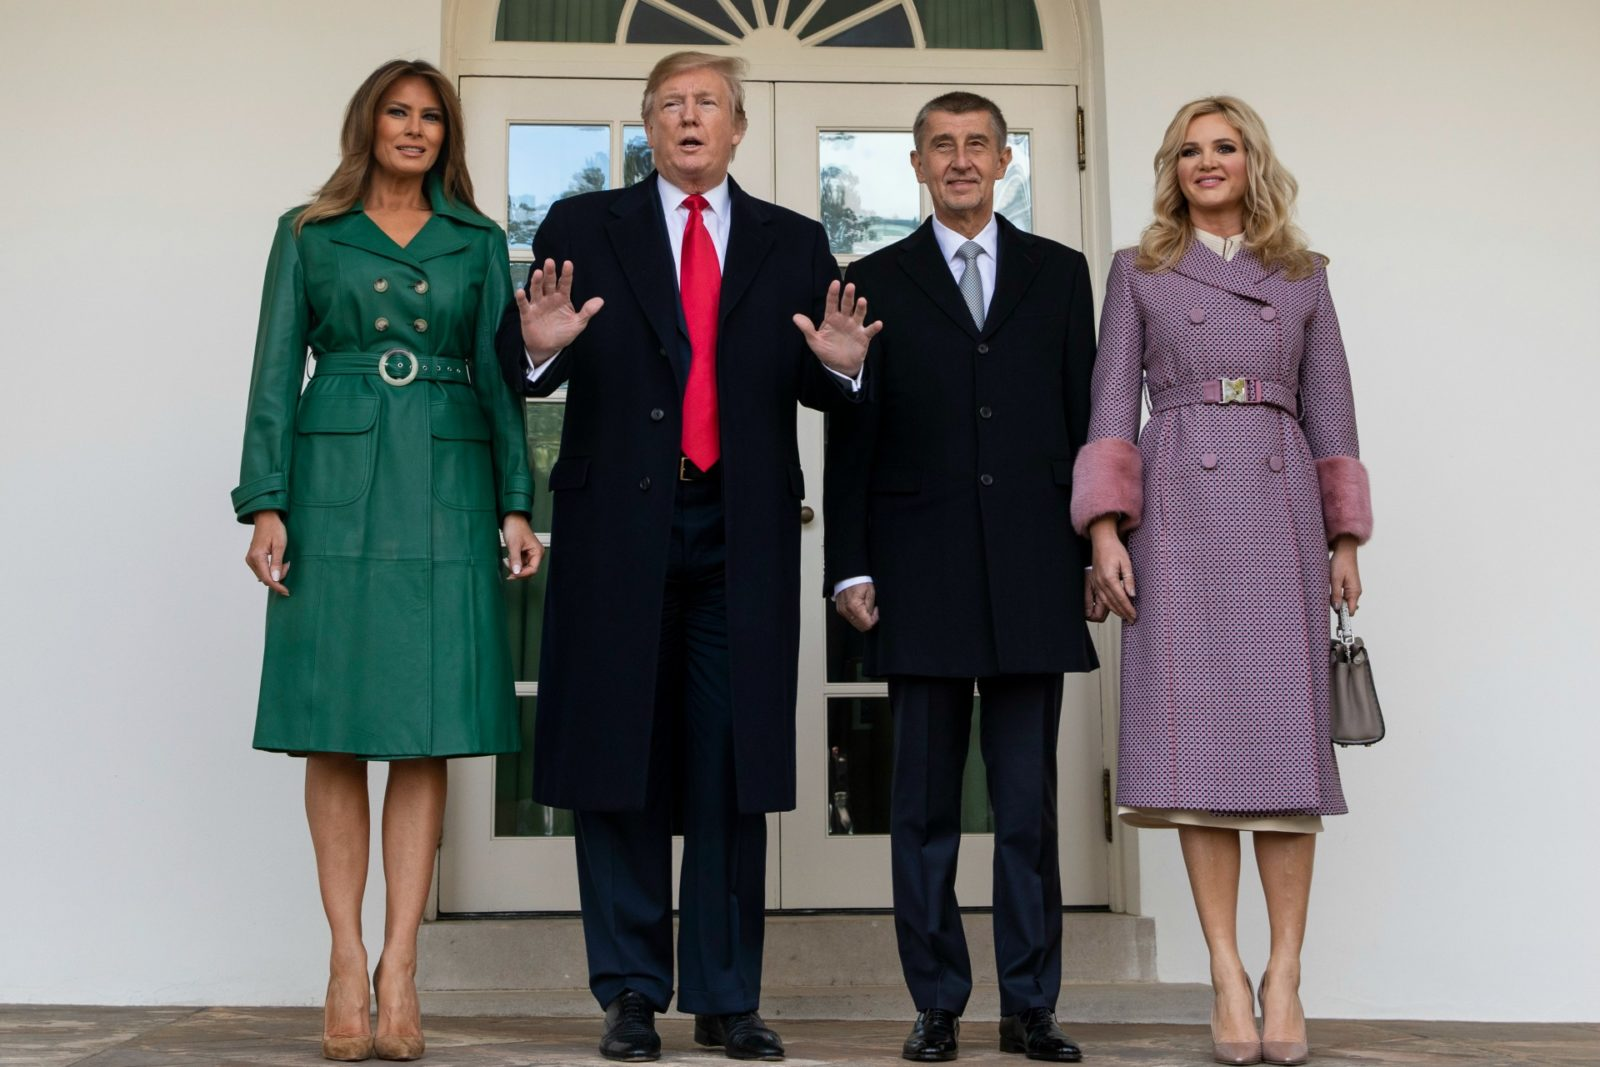 Melania Trump looked stunning in a green leather coat as she met with Czech Republic's Prime Minister Andrej Babi and his wife Monika Babiová alongside husband Donald Trump. Source: Getty